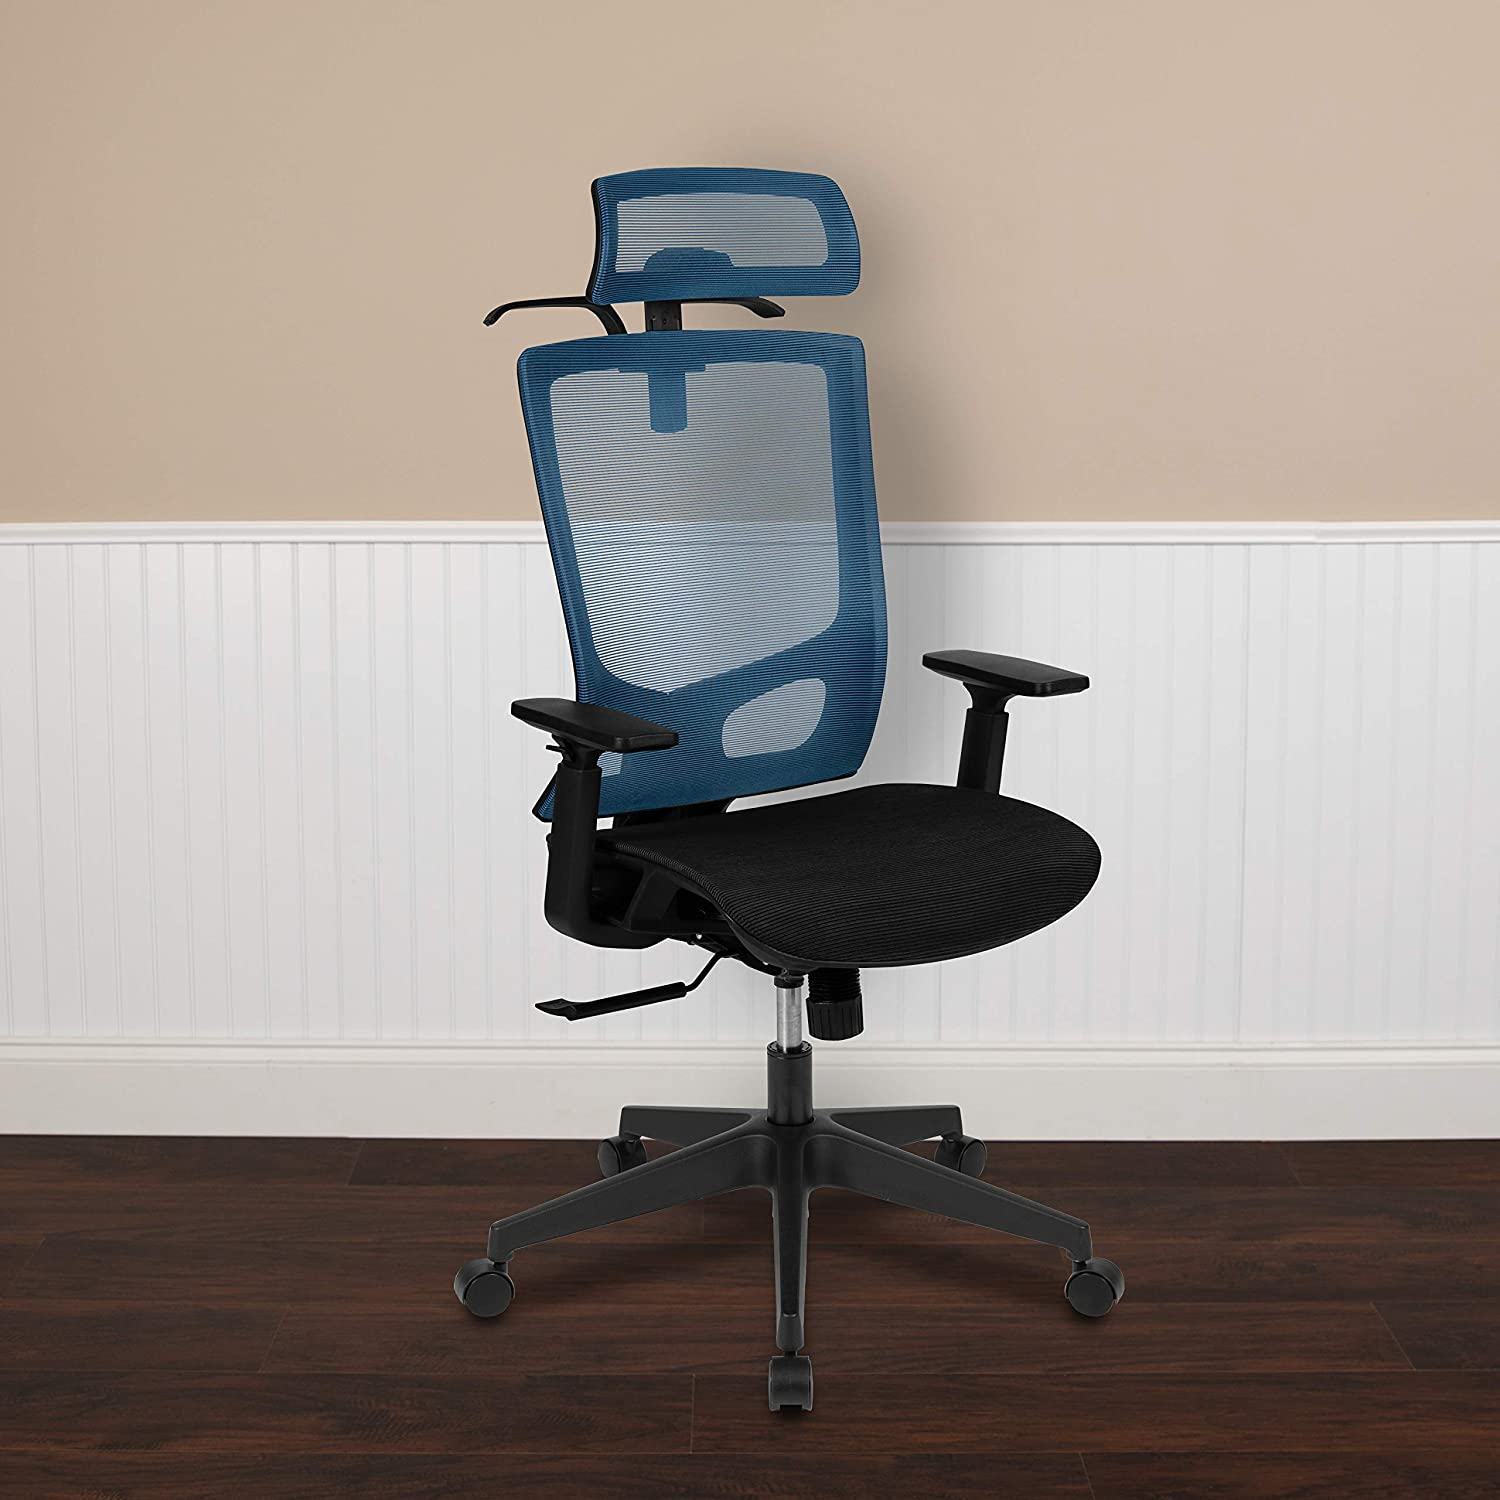 In stock EMMA + Safety and trust OLIVER Ergonomic Blue Pi Chair-Synchro Mesh Black Office